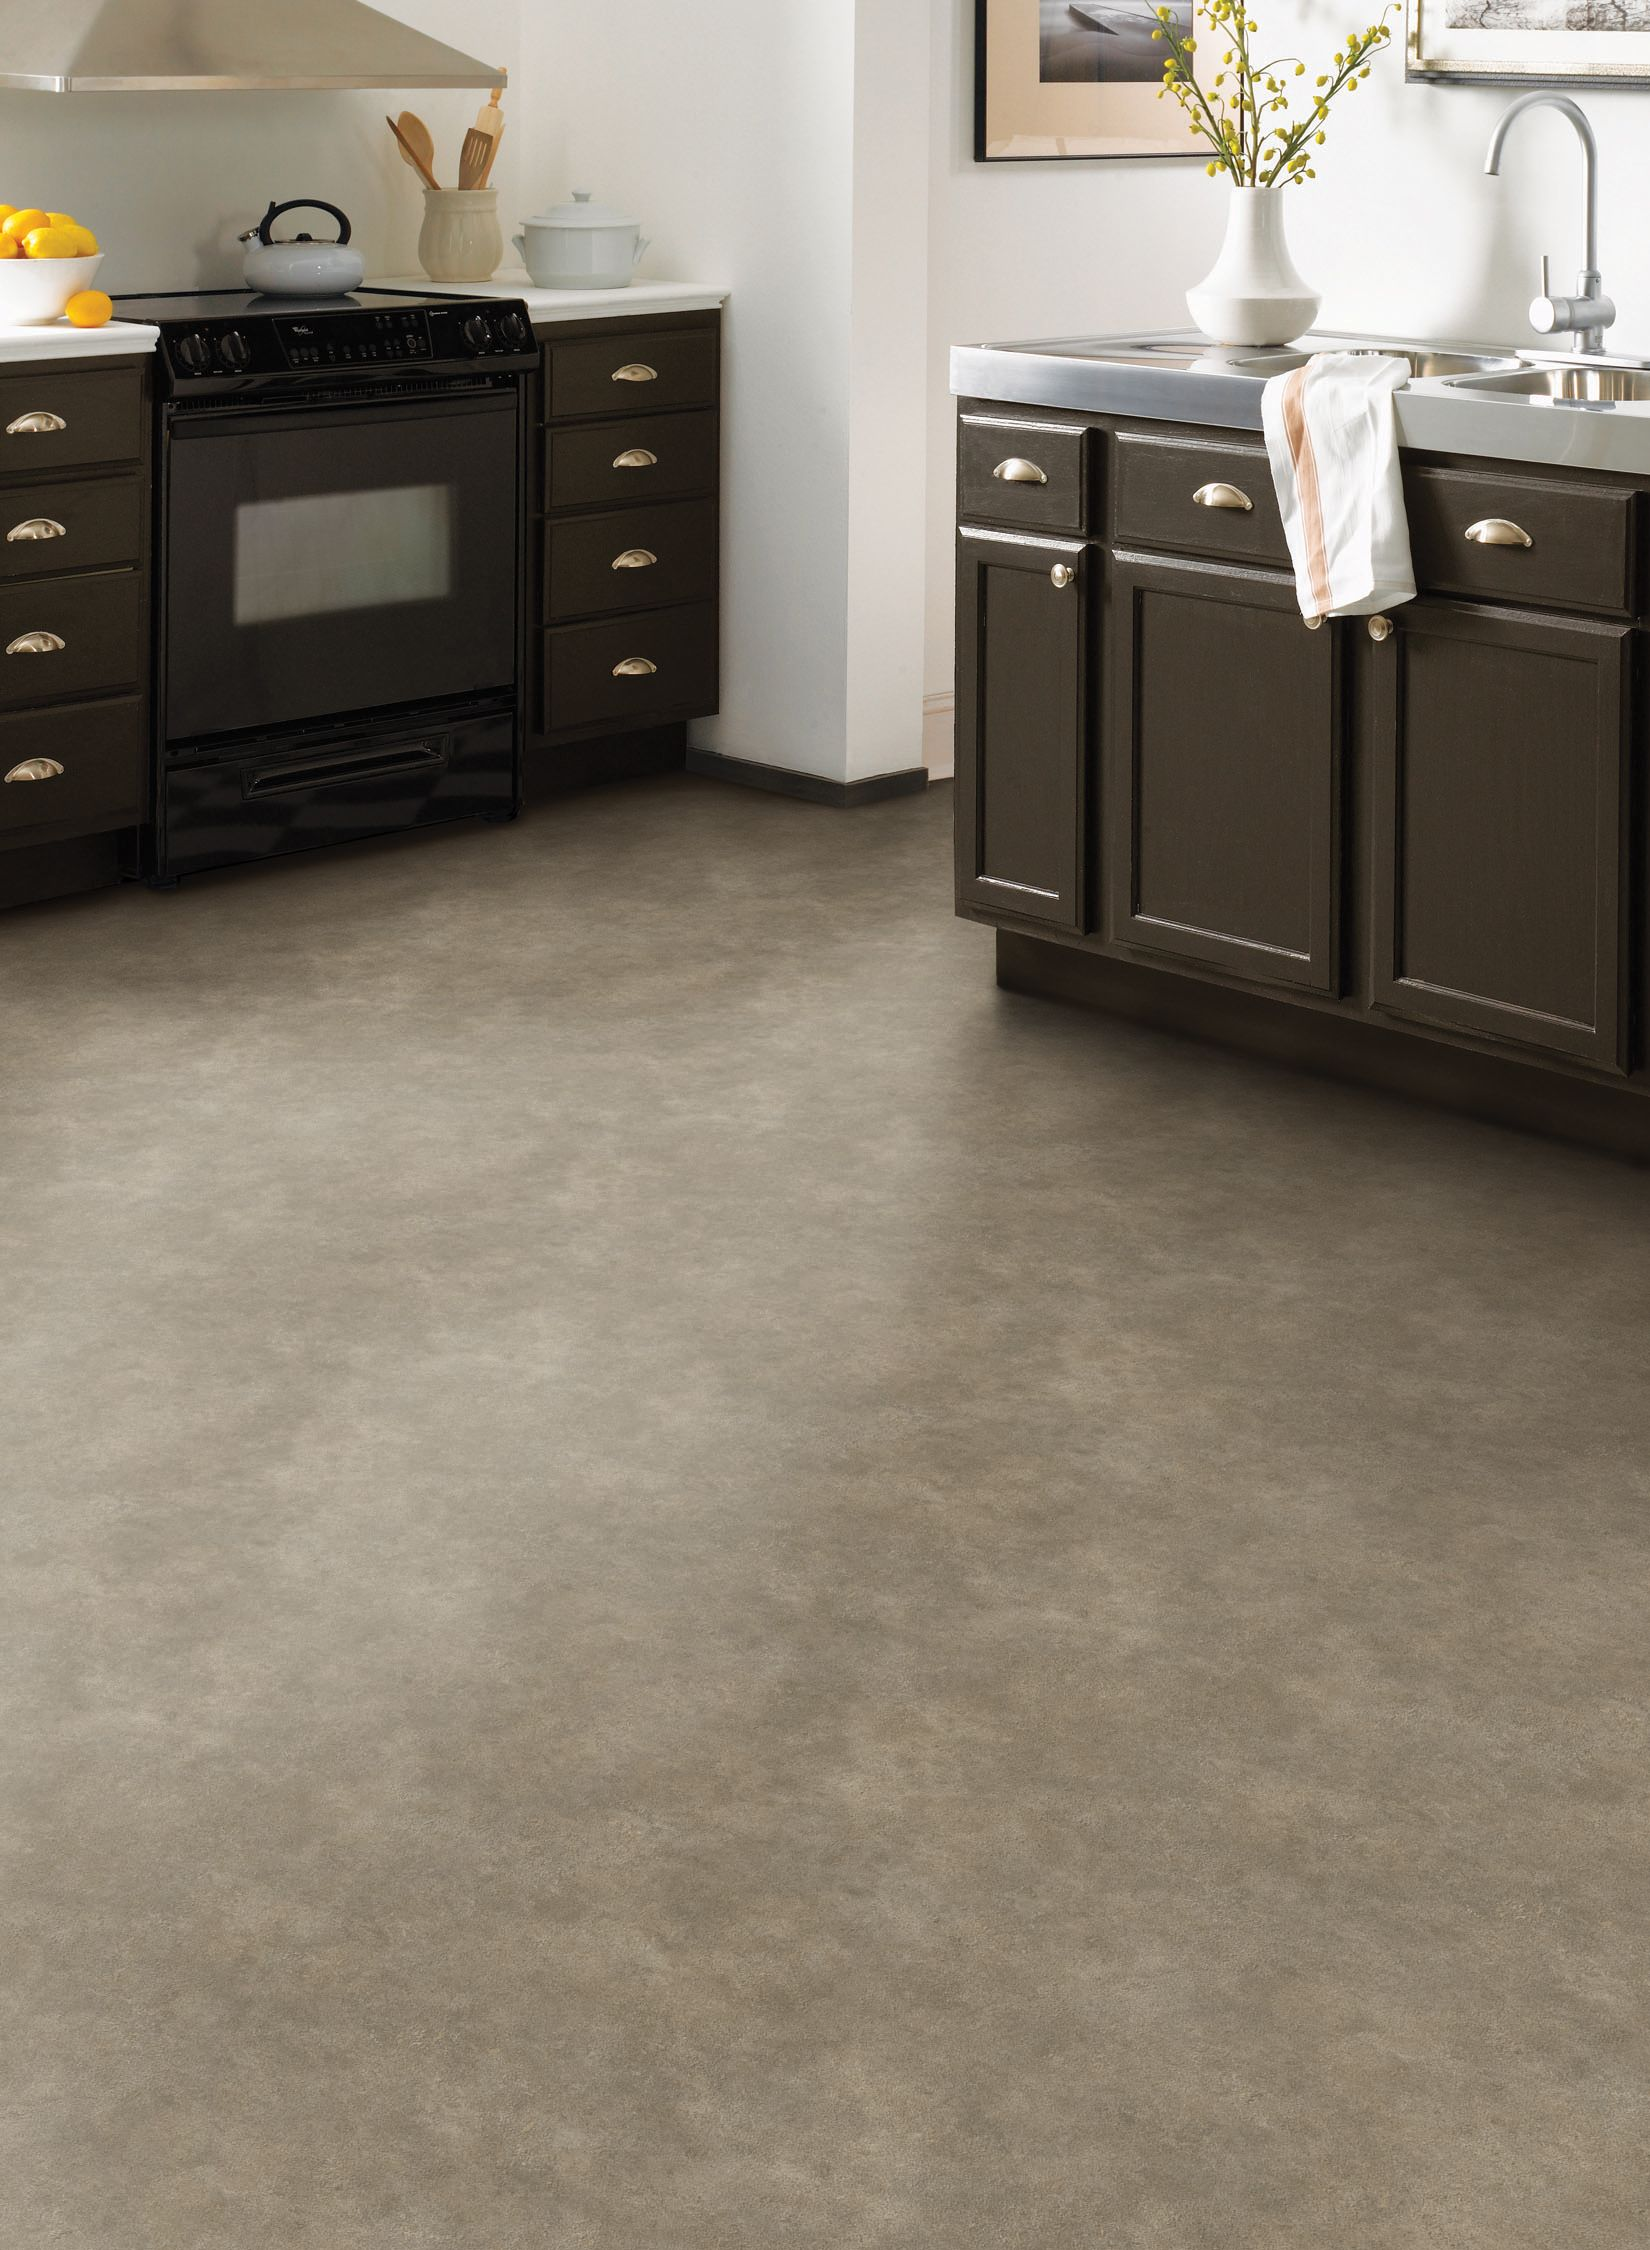 Great Floors That Remain Timeless With Any Decor Grey Concrete Sheet Vinyl Vinyl Flooring Kitchen Vinyl Flooring Flooring